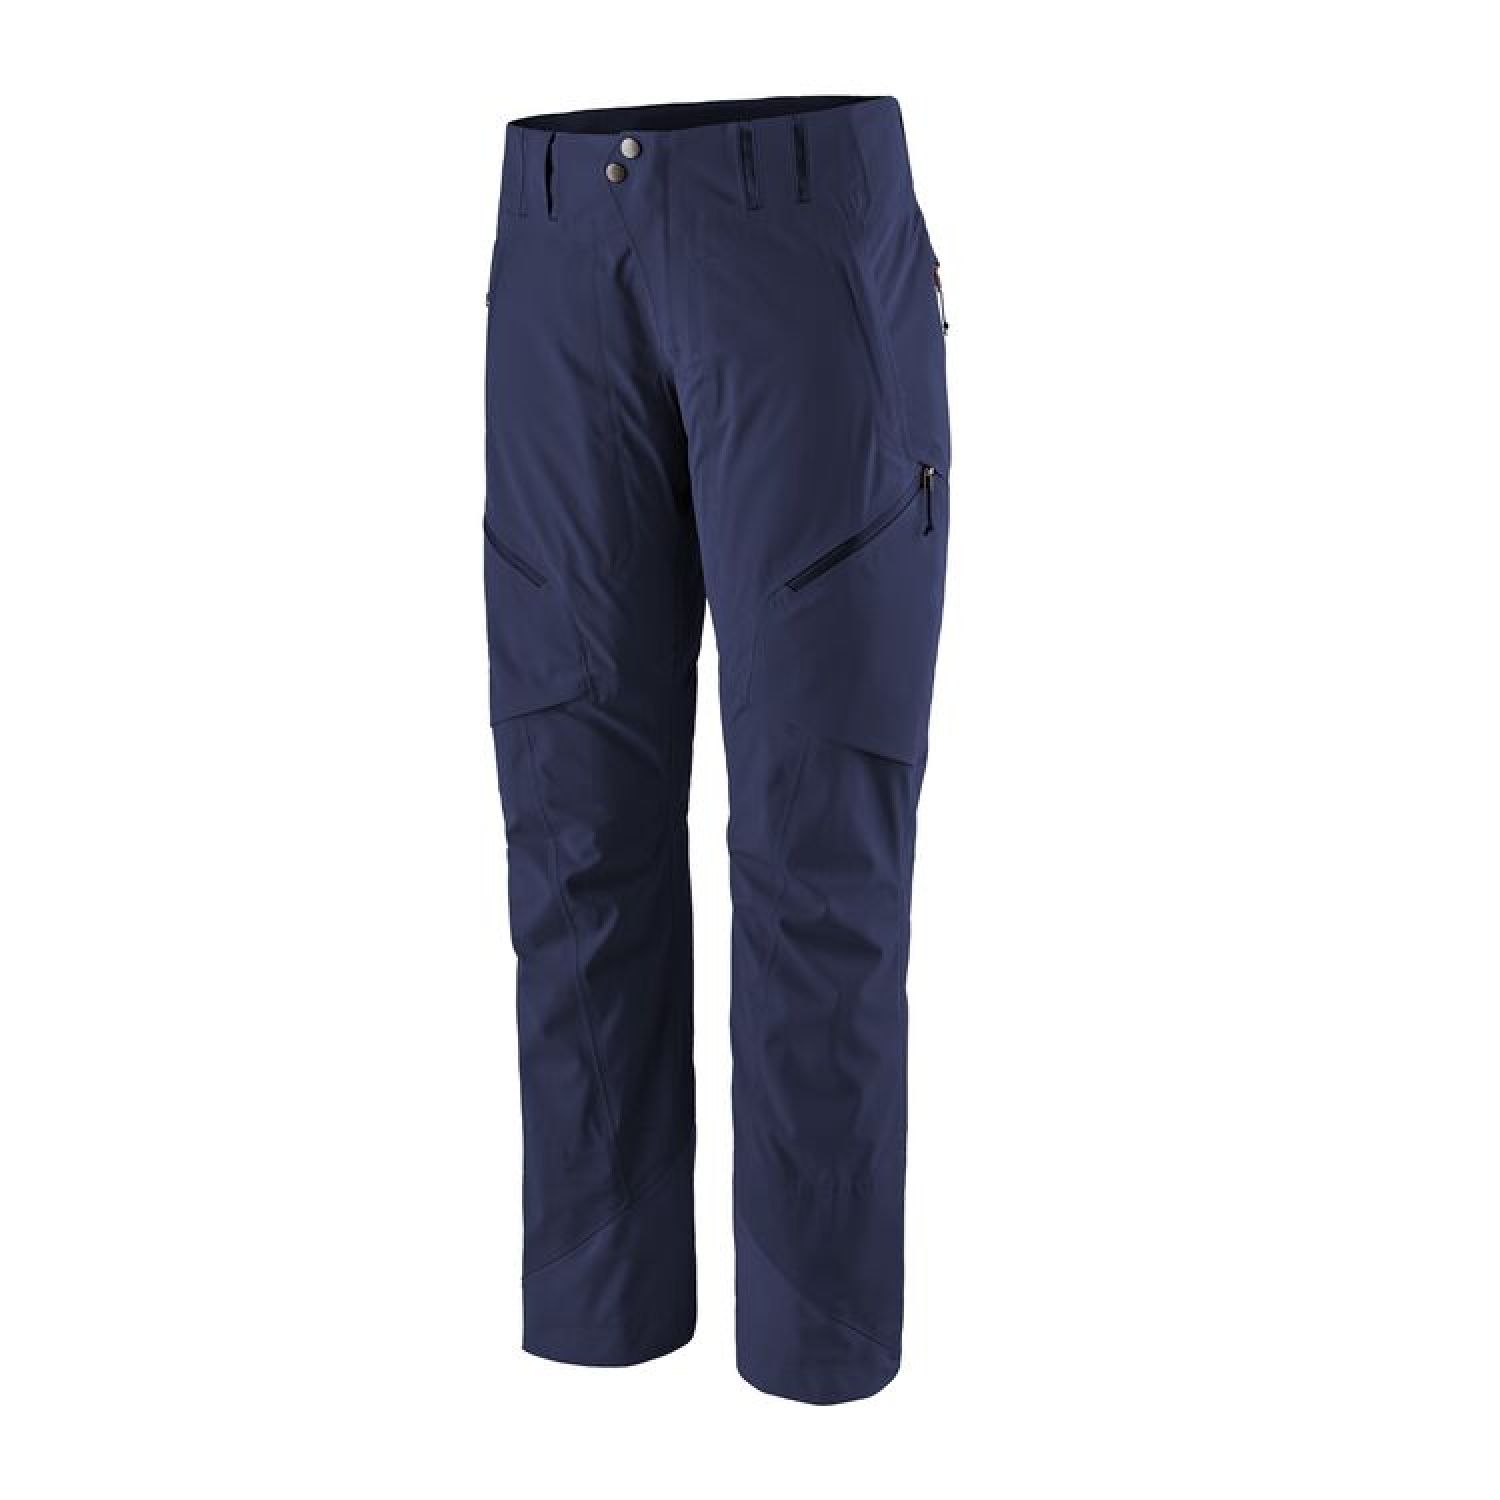 Patagonia | Untracked Pants Womens 19/20 | Skihose Classic Navy | XS